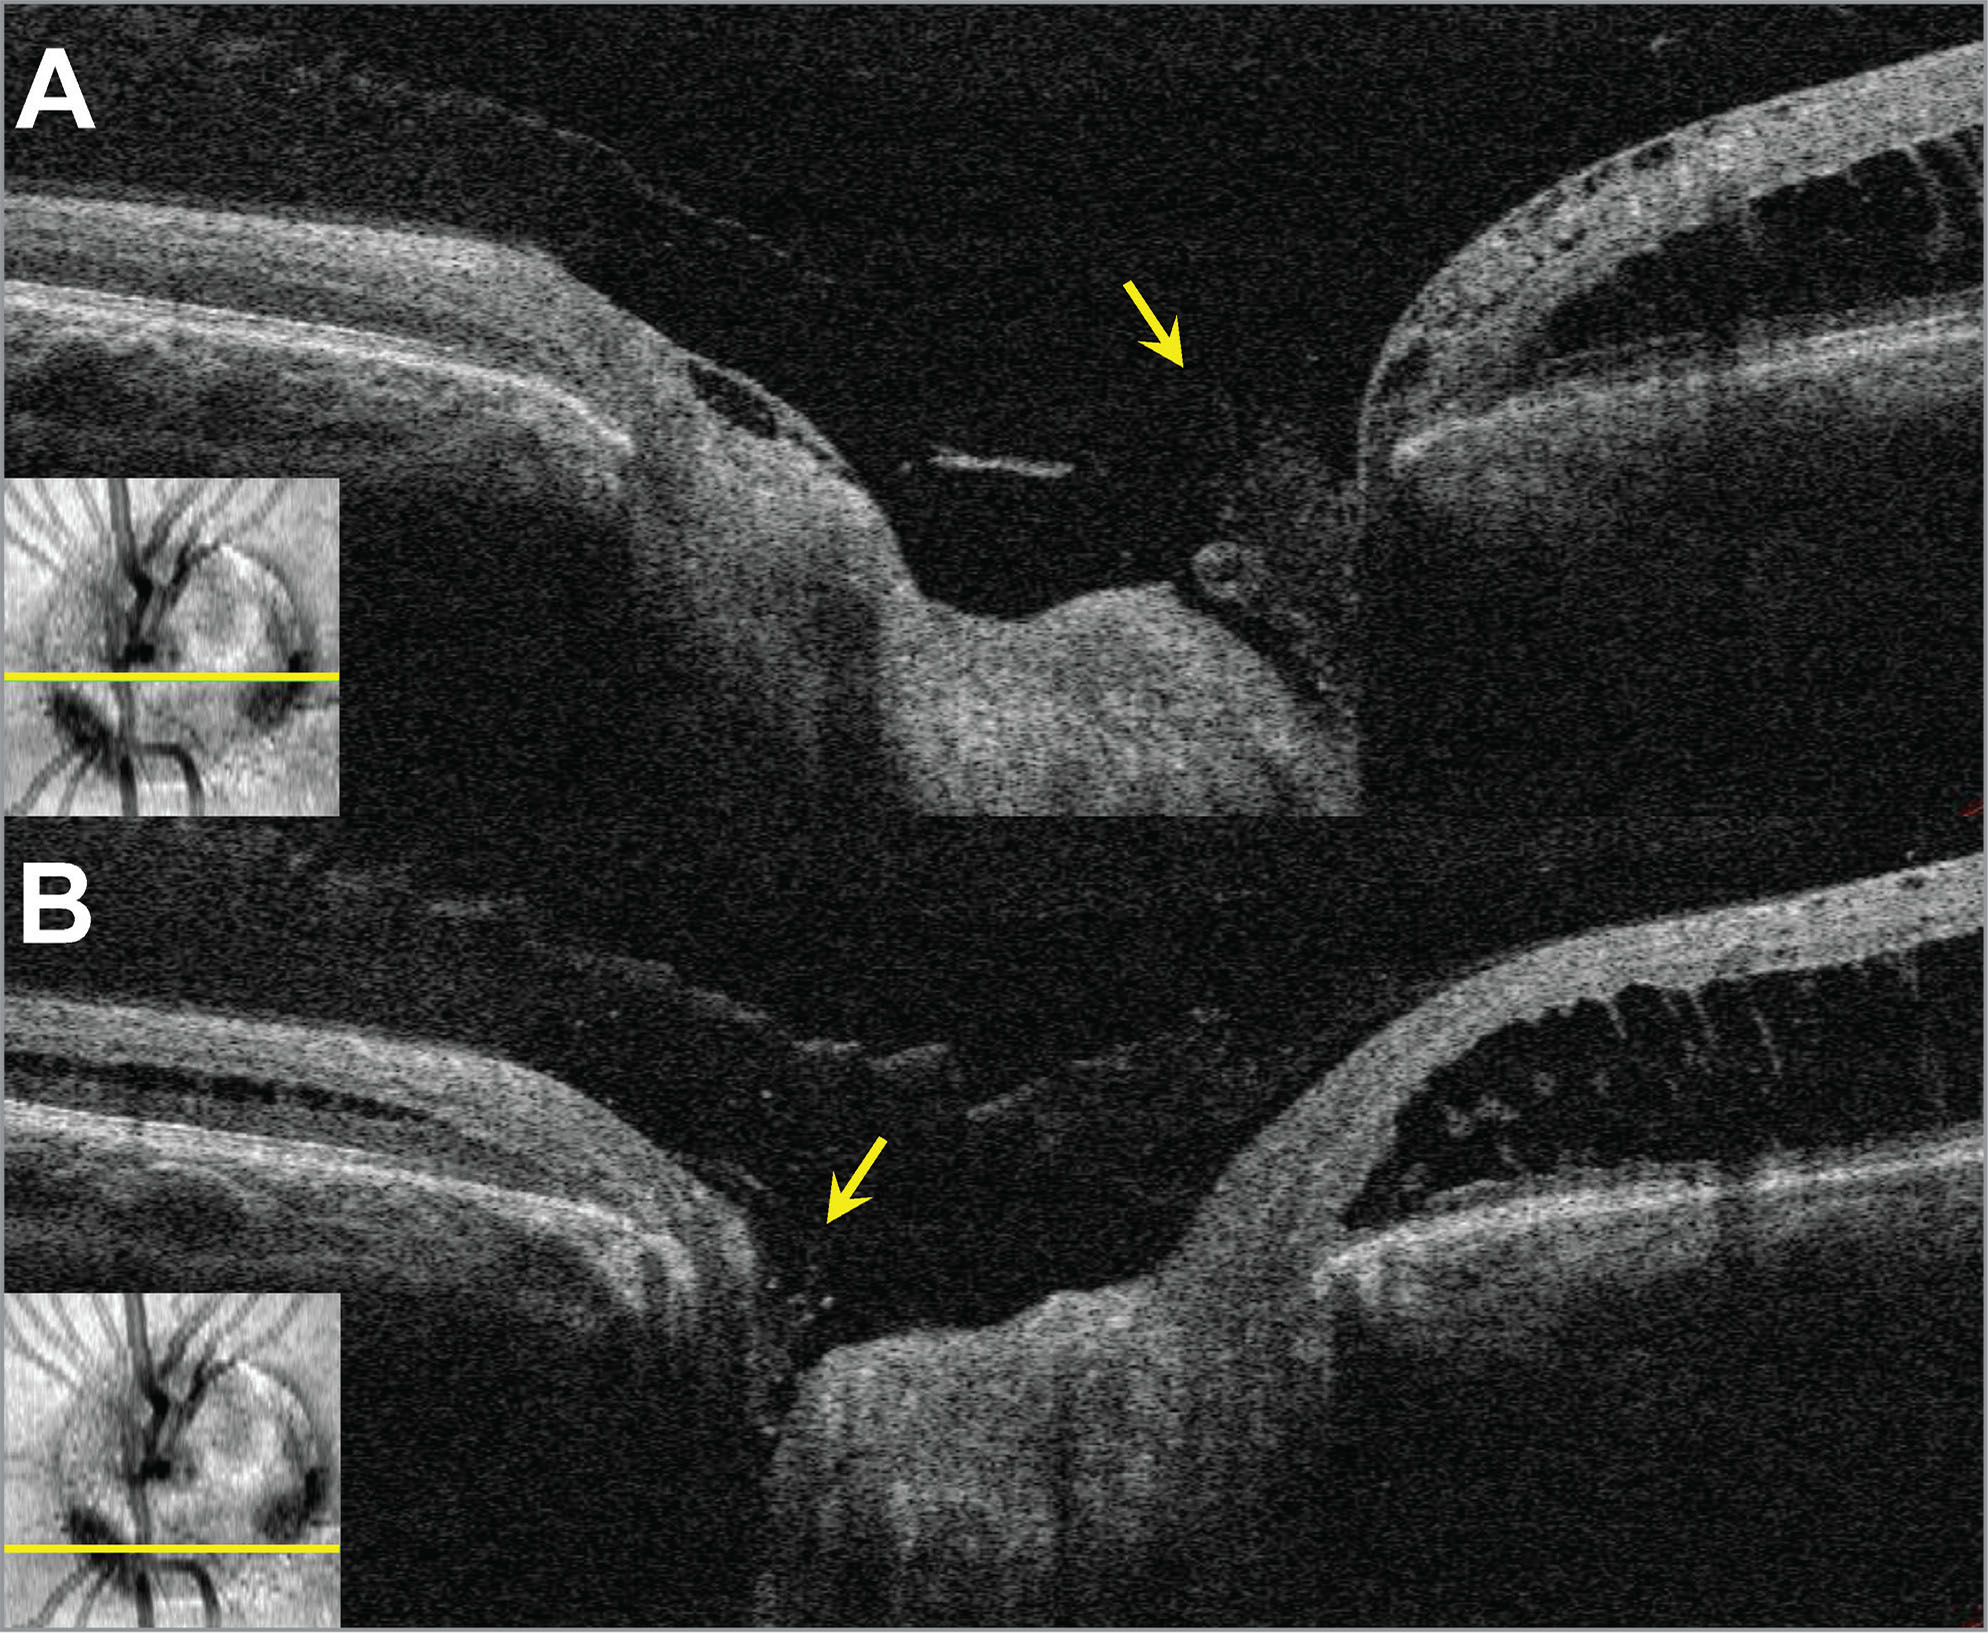 High-resolution optical coherence tomography (OCT) of the distinct optic pits with separate laminar defects and glial plugs, temporally, (A) and nasally (B) as indicated by arrows. Insets depict the cross-section level for each OCT image.